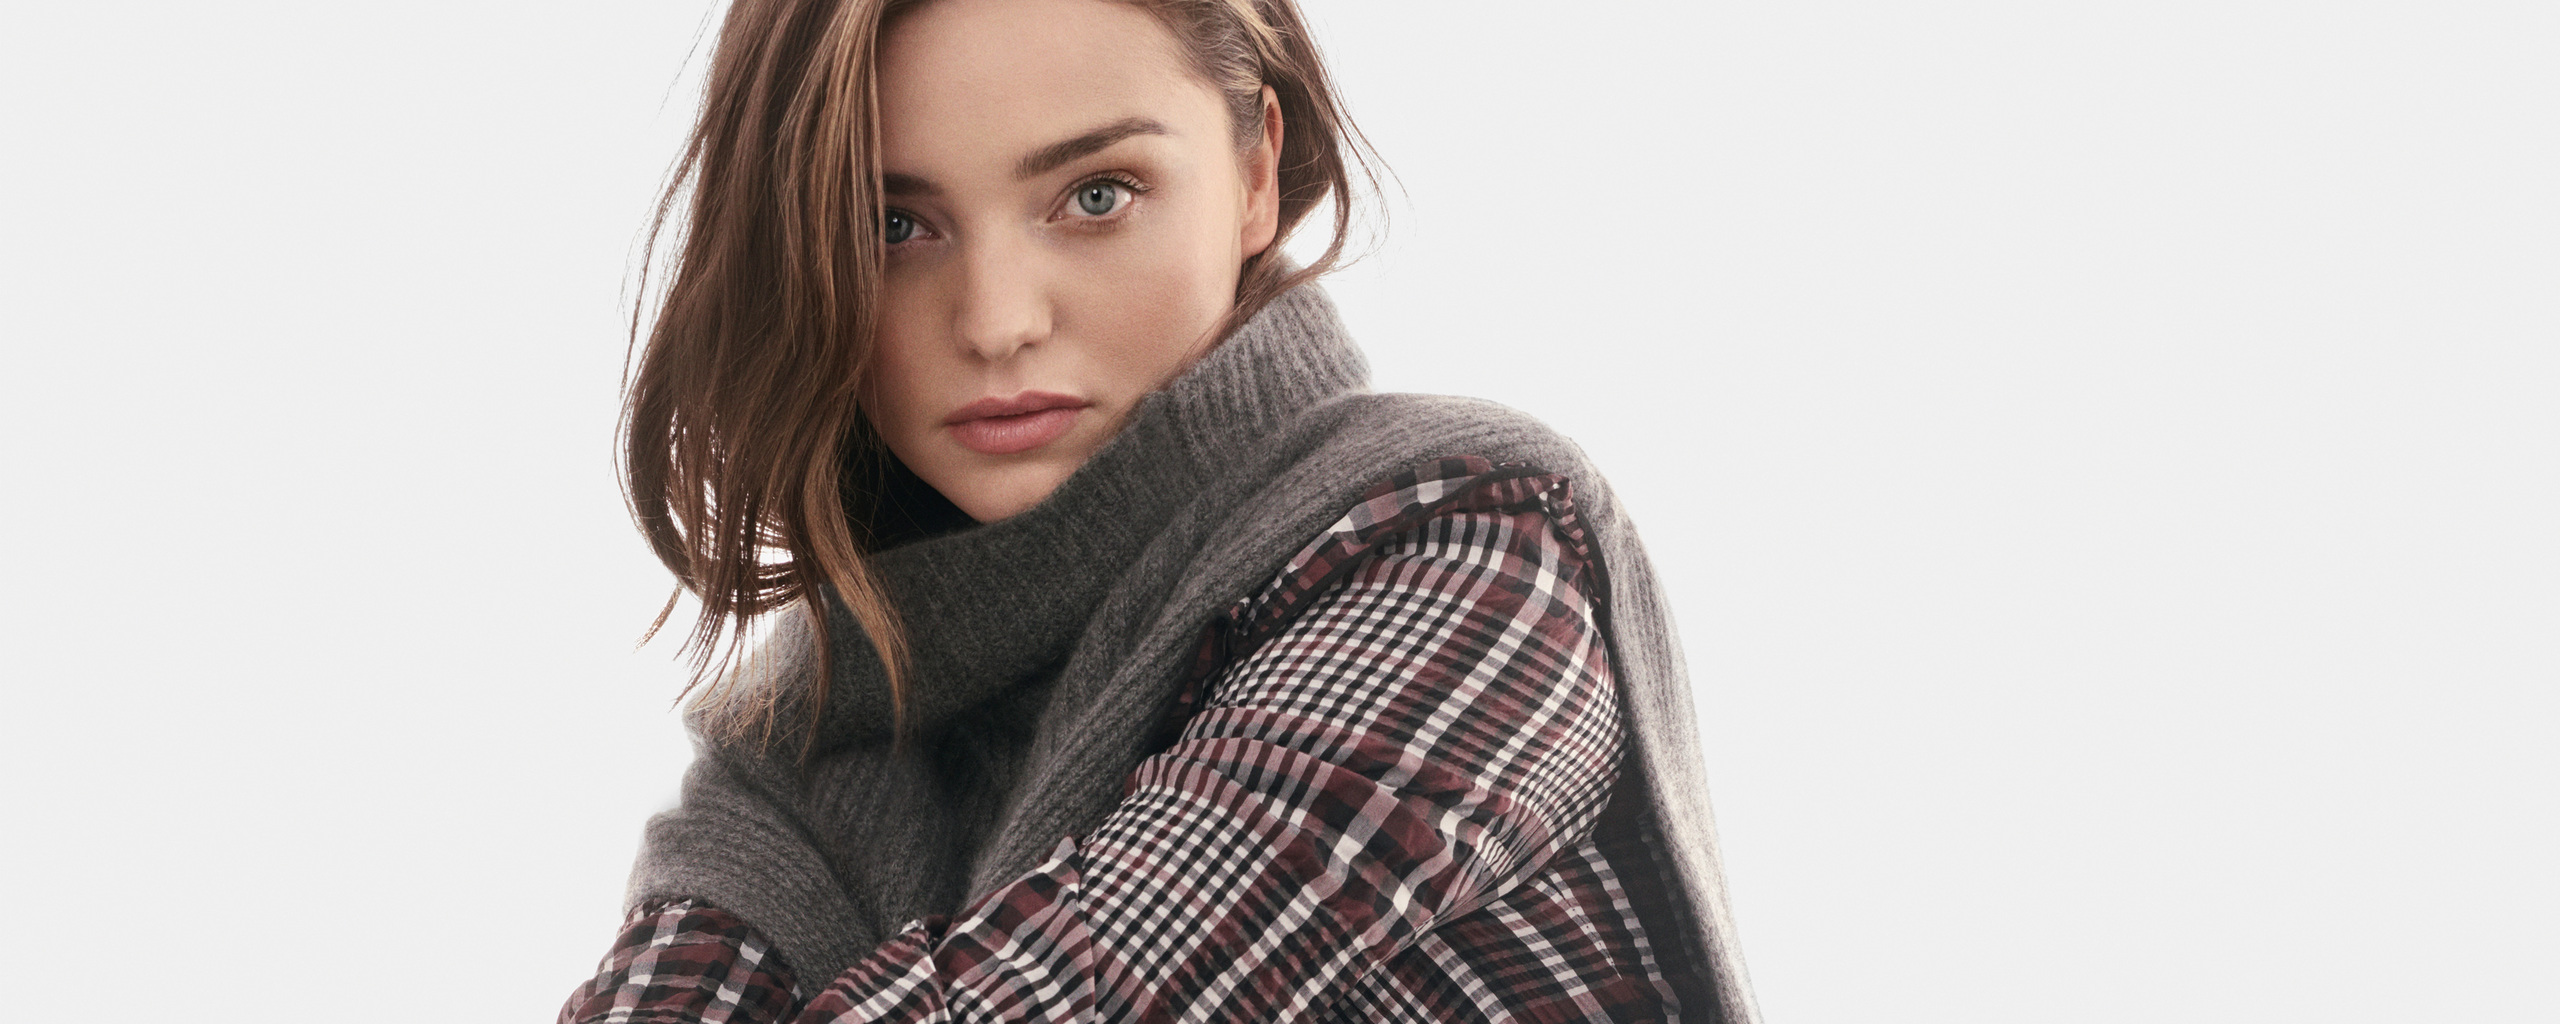 miranda-kerr-the-edit-4k-u2.jpg